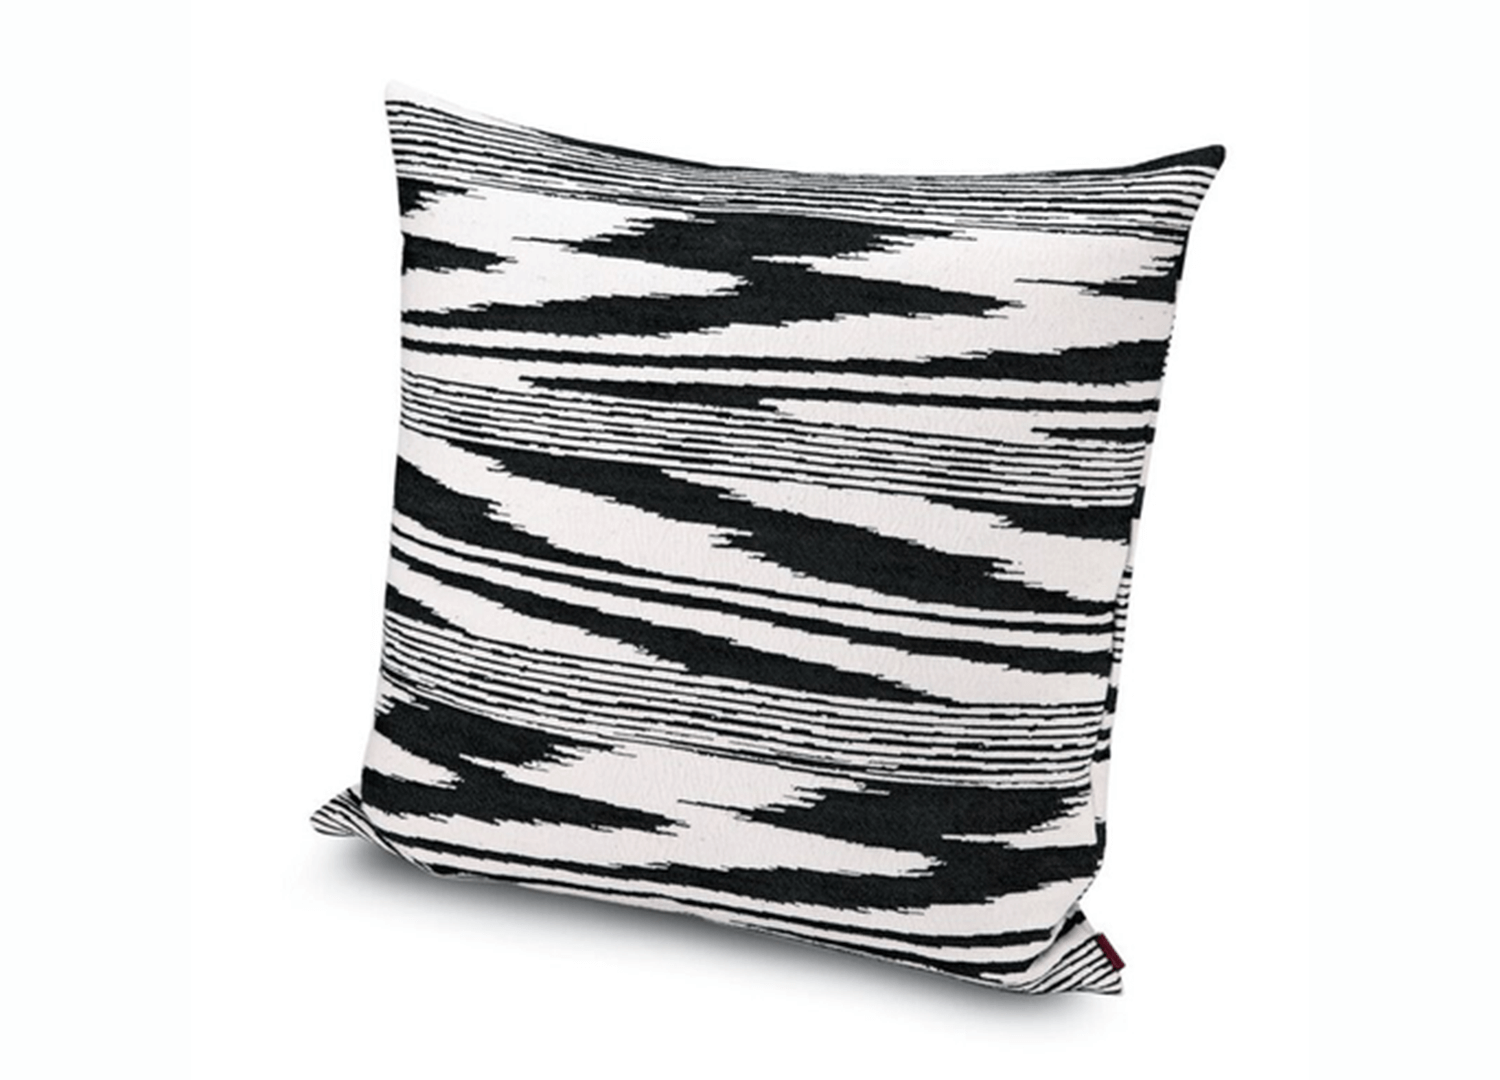 est living design directory safi cushion missoni spence lyda